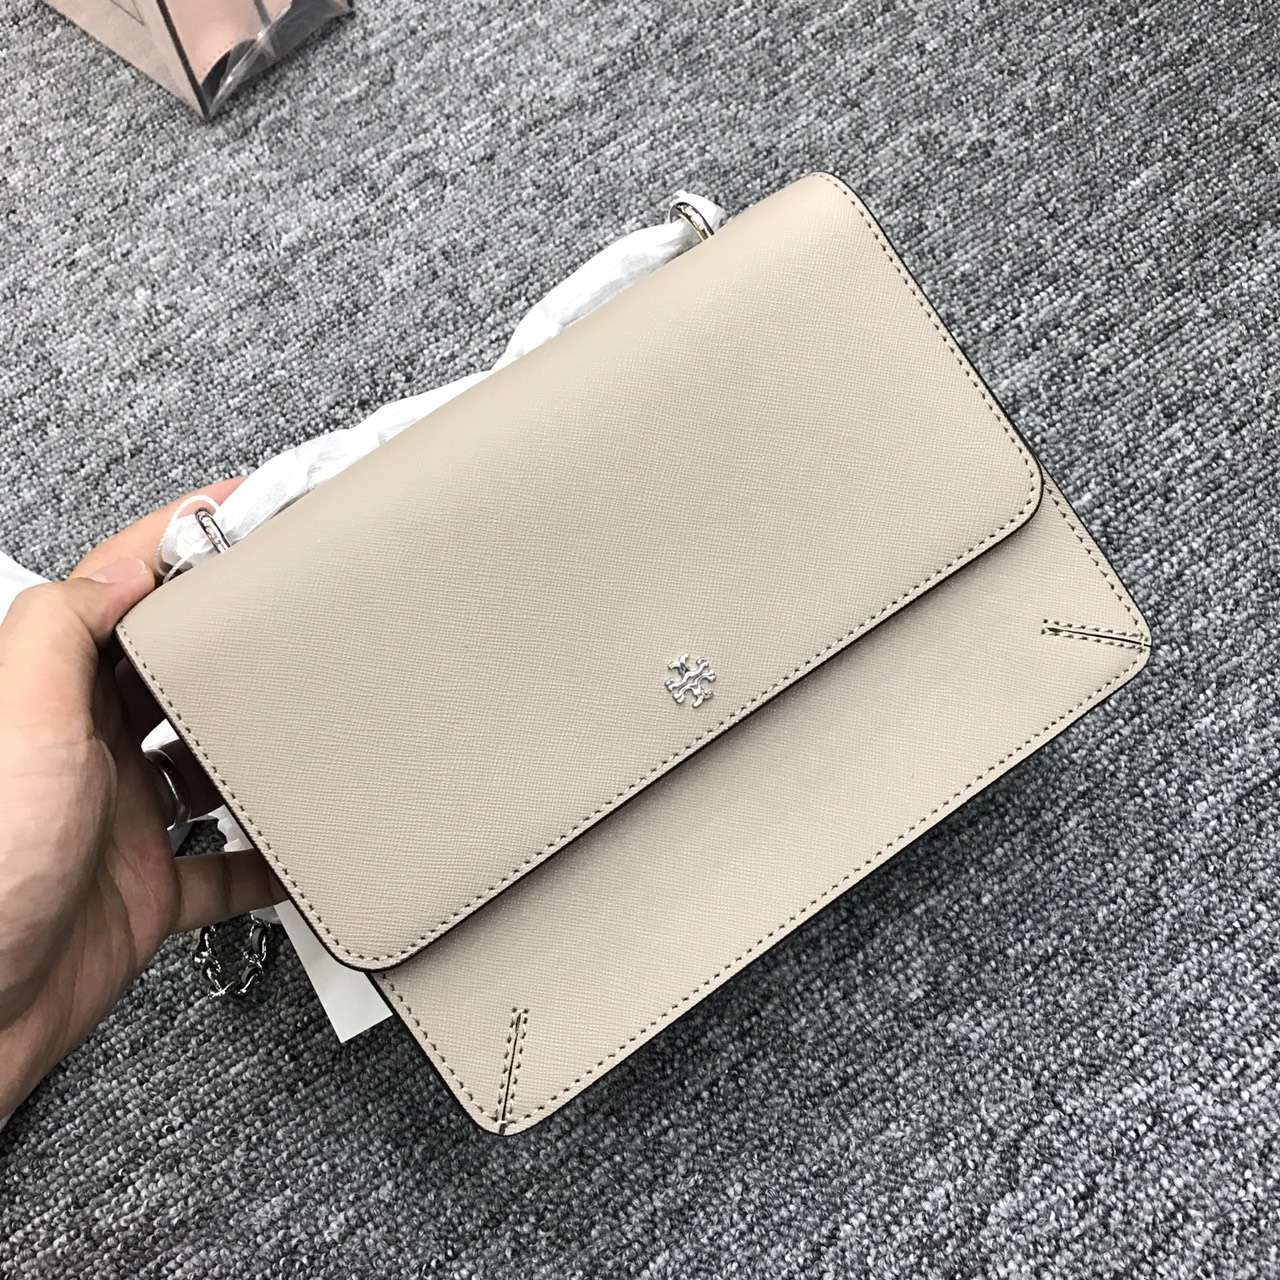 Tory Burch Robinson Convertible Leather Shoulder Bag